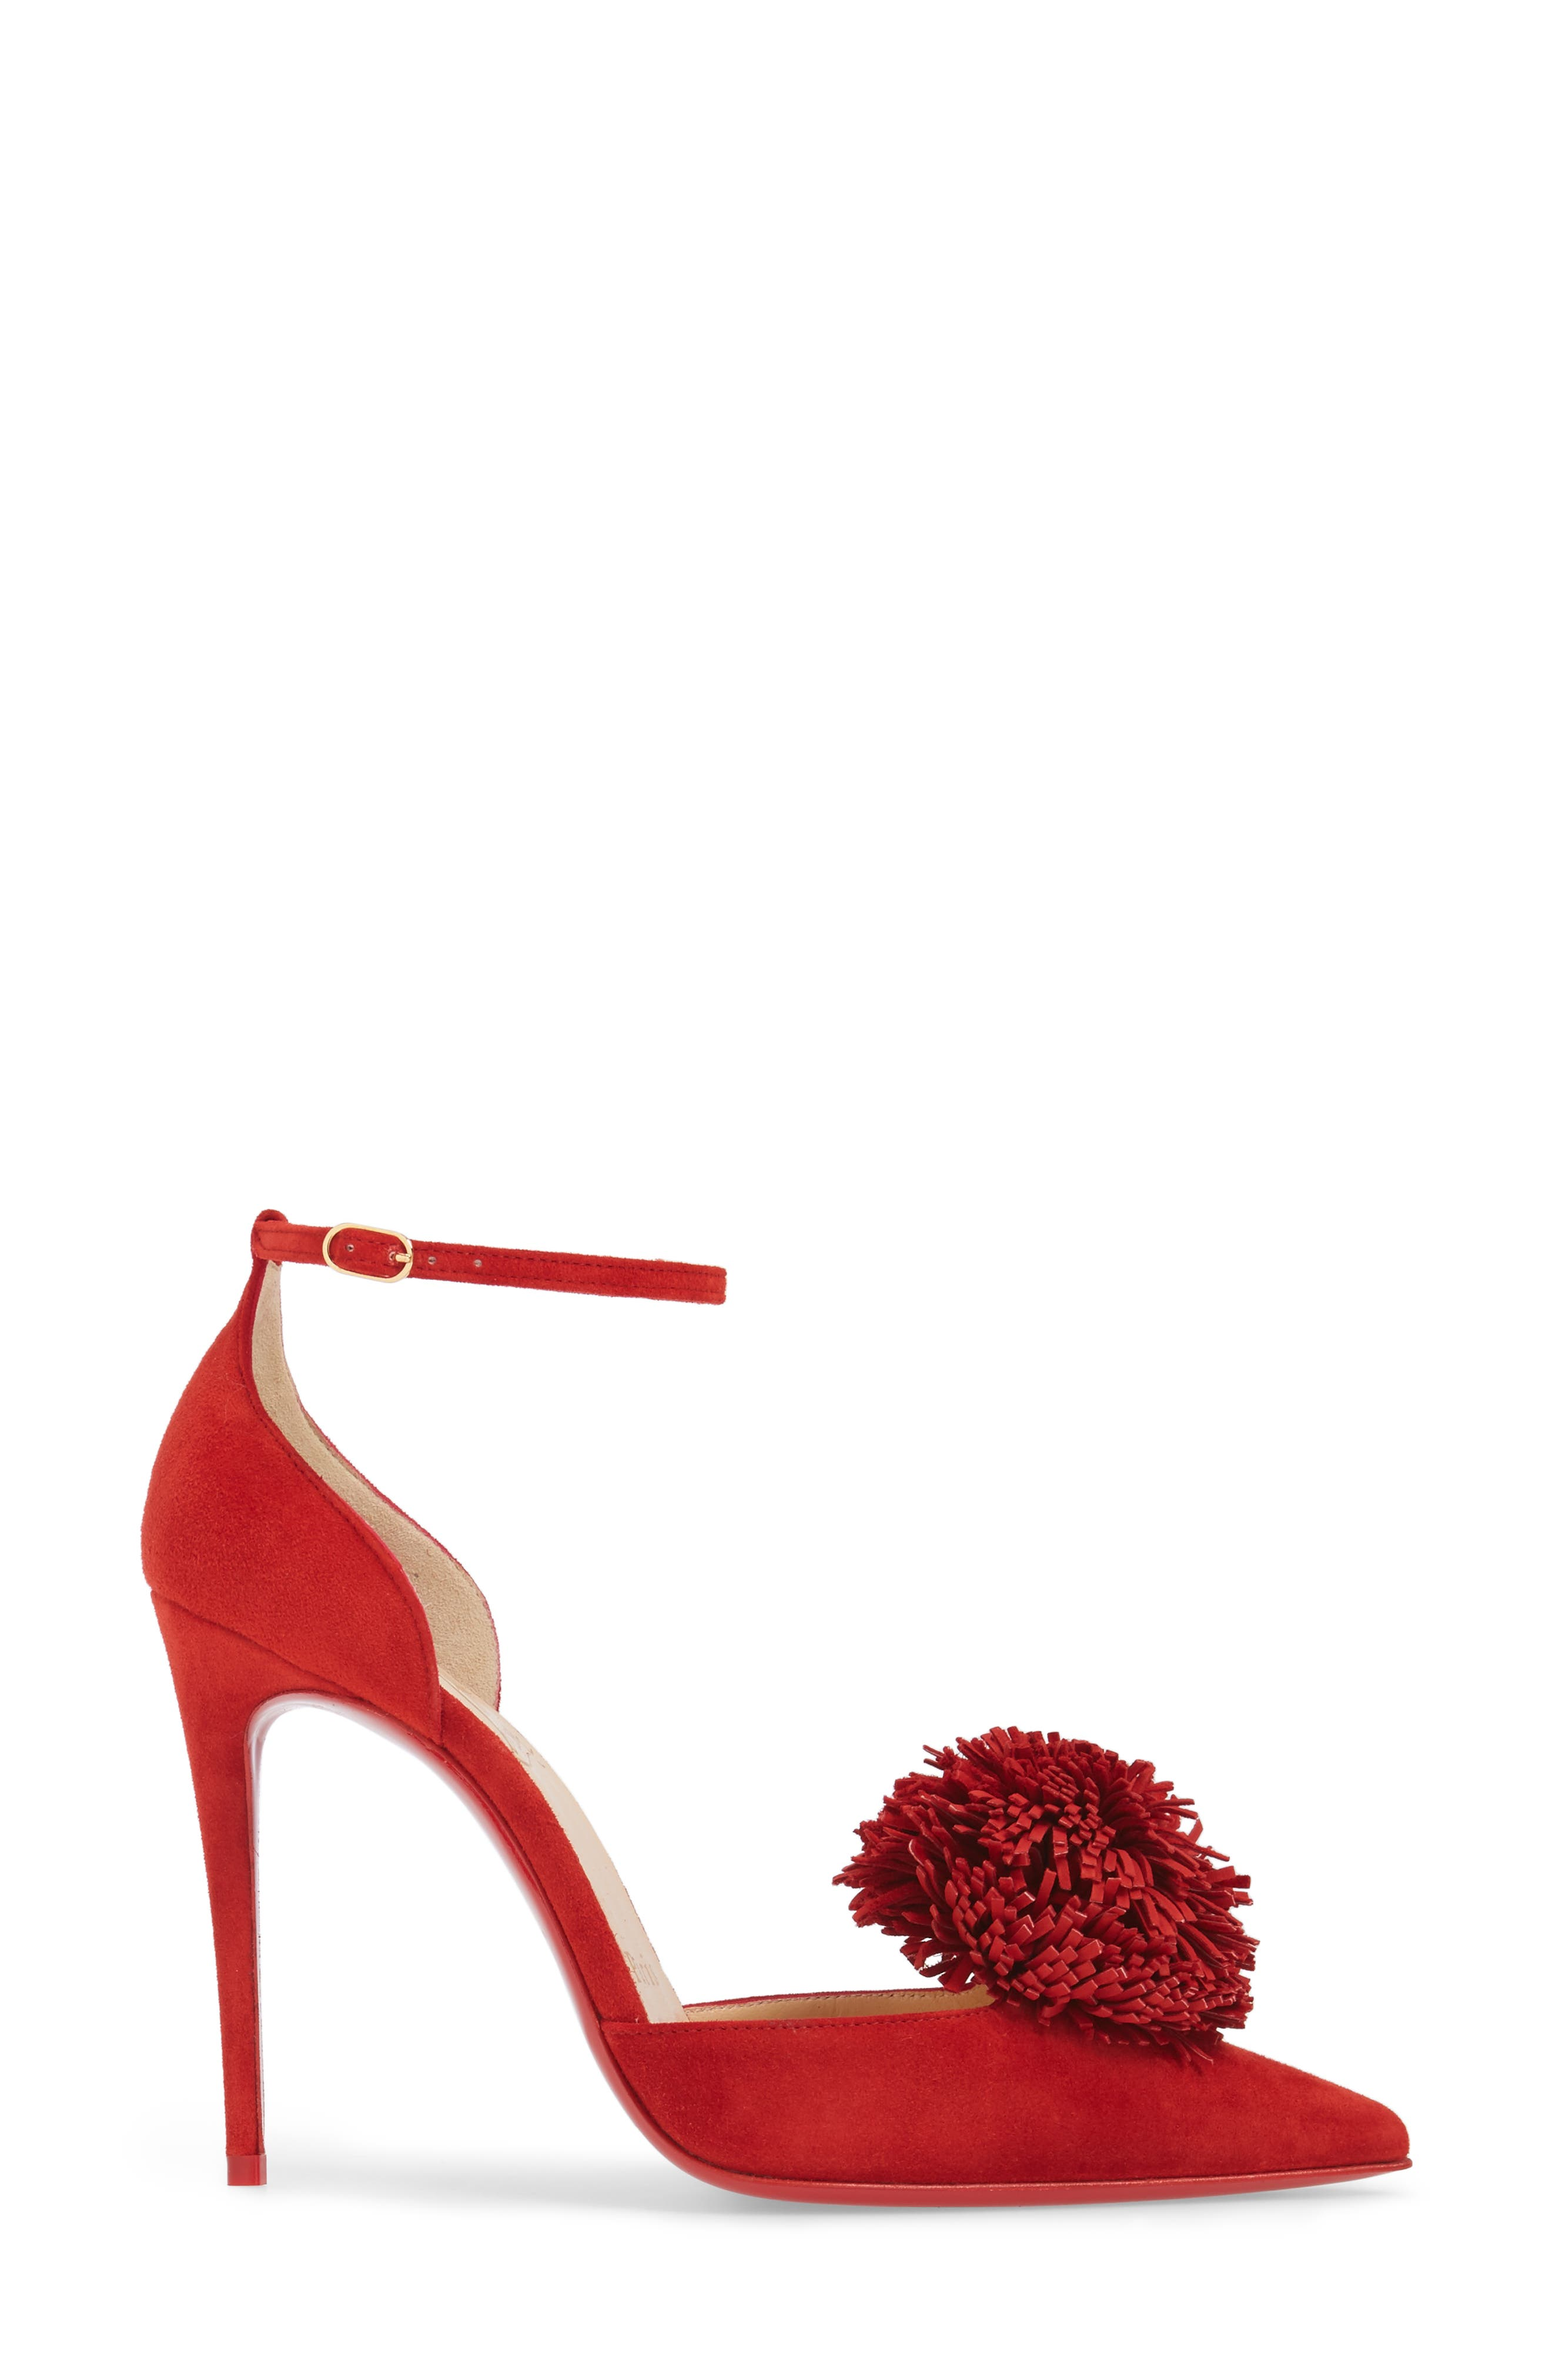 Alternate Image 3  - Christian Louboutin Tsarou Pom Ankle Strap Pump (Women)